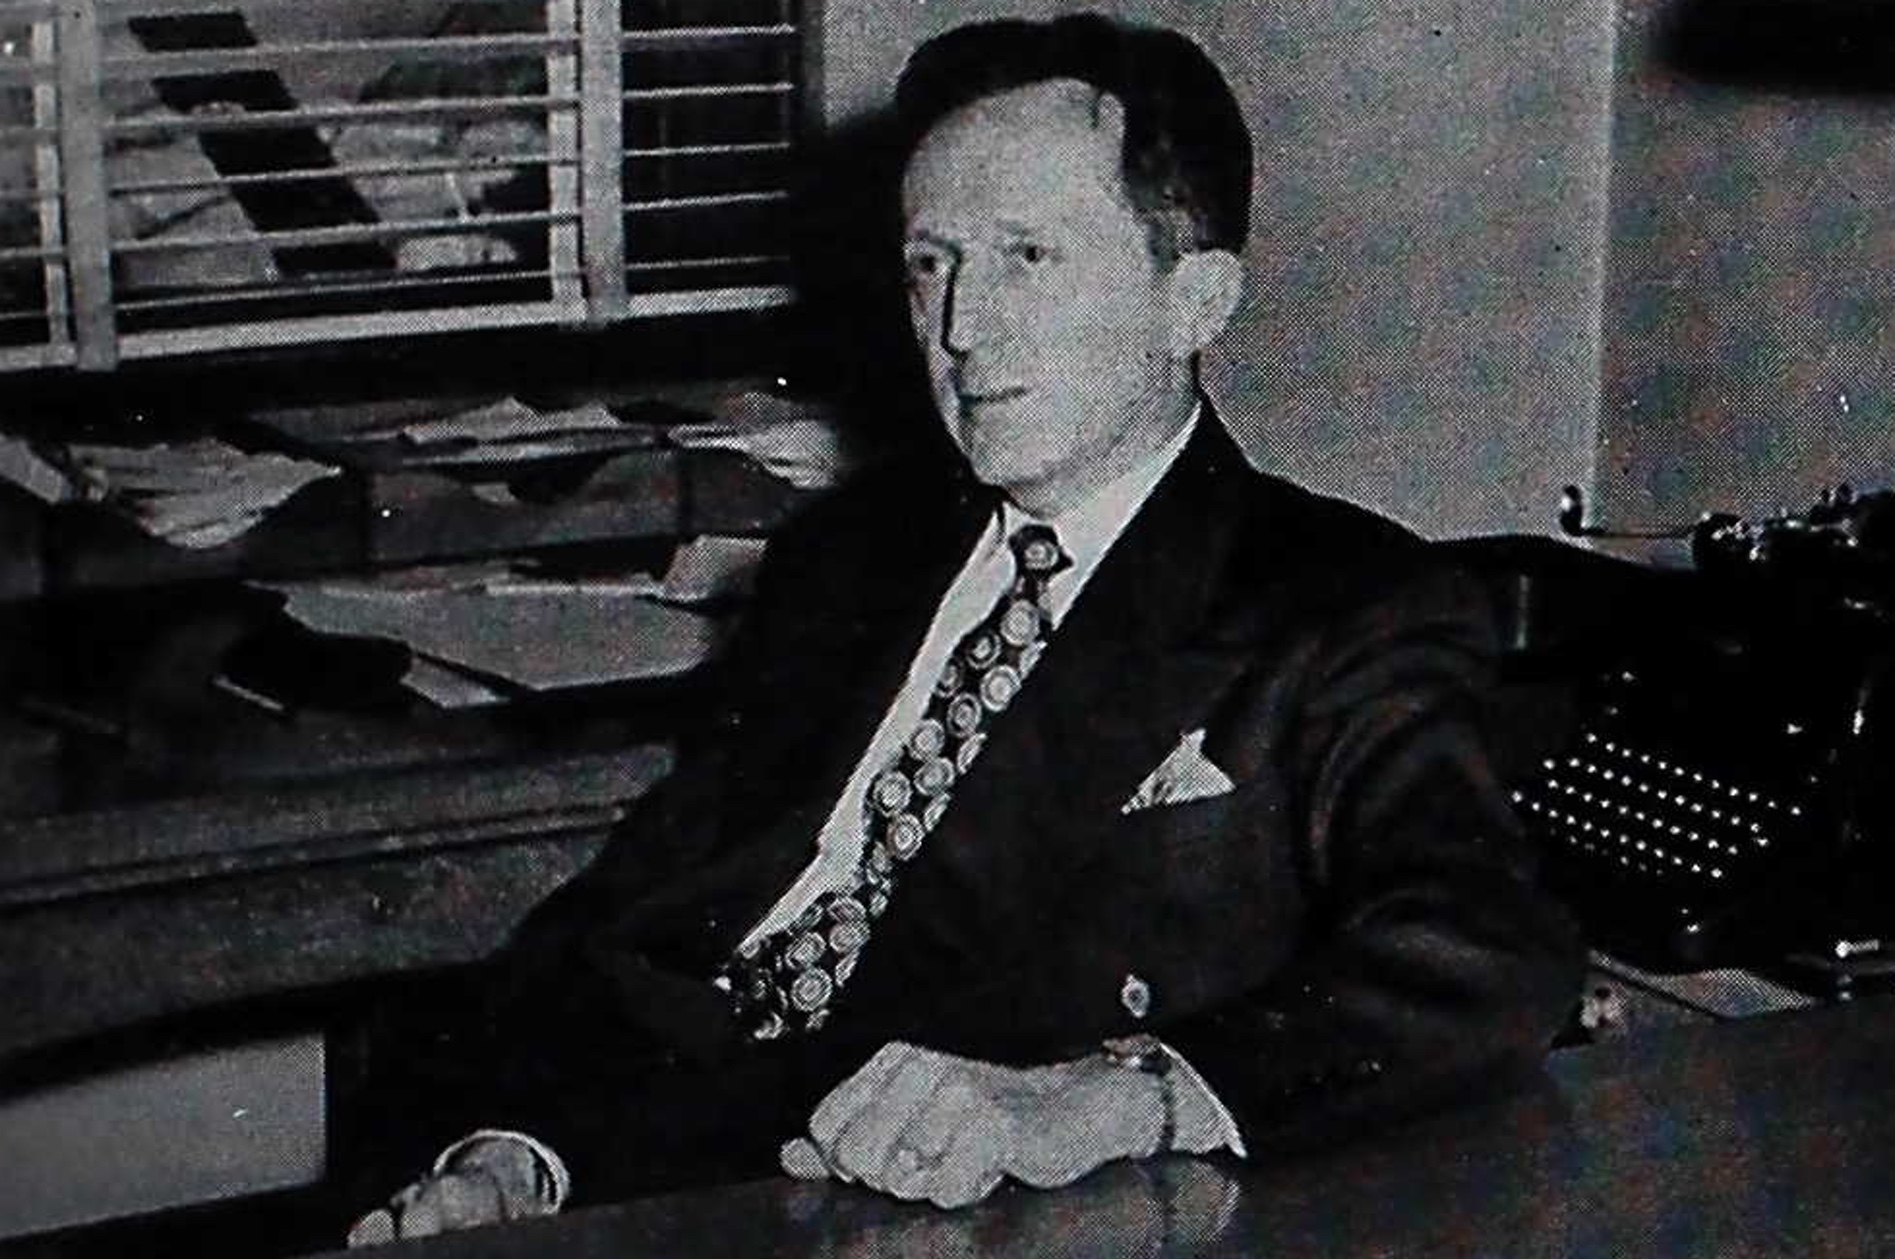 MU advertising professor EK Johnston hosted parties for gay men in the 1940s off campus. In 1948, he was fired and criminally charged for being gay.